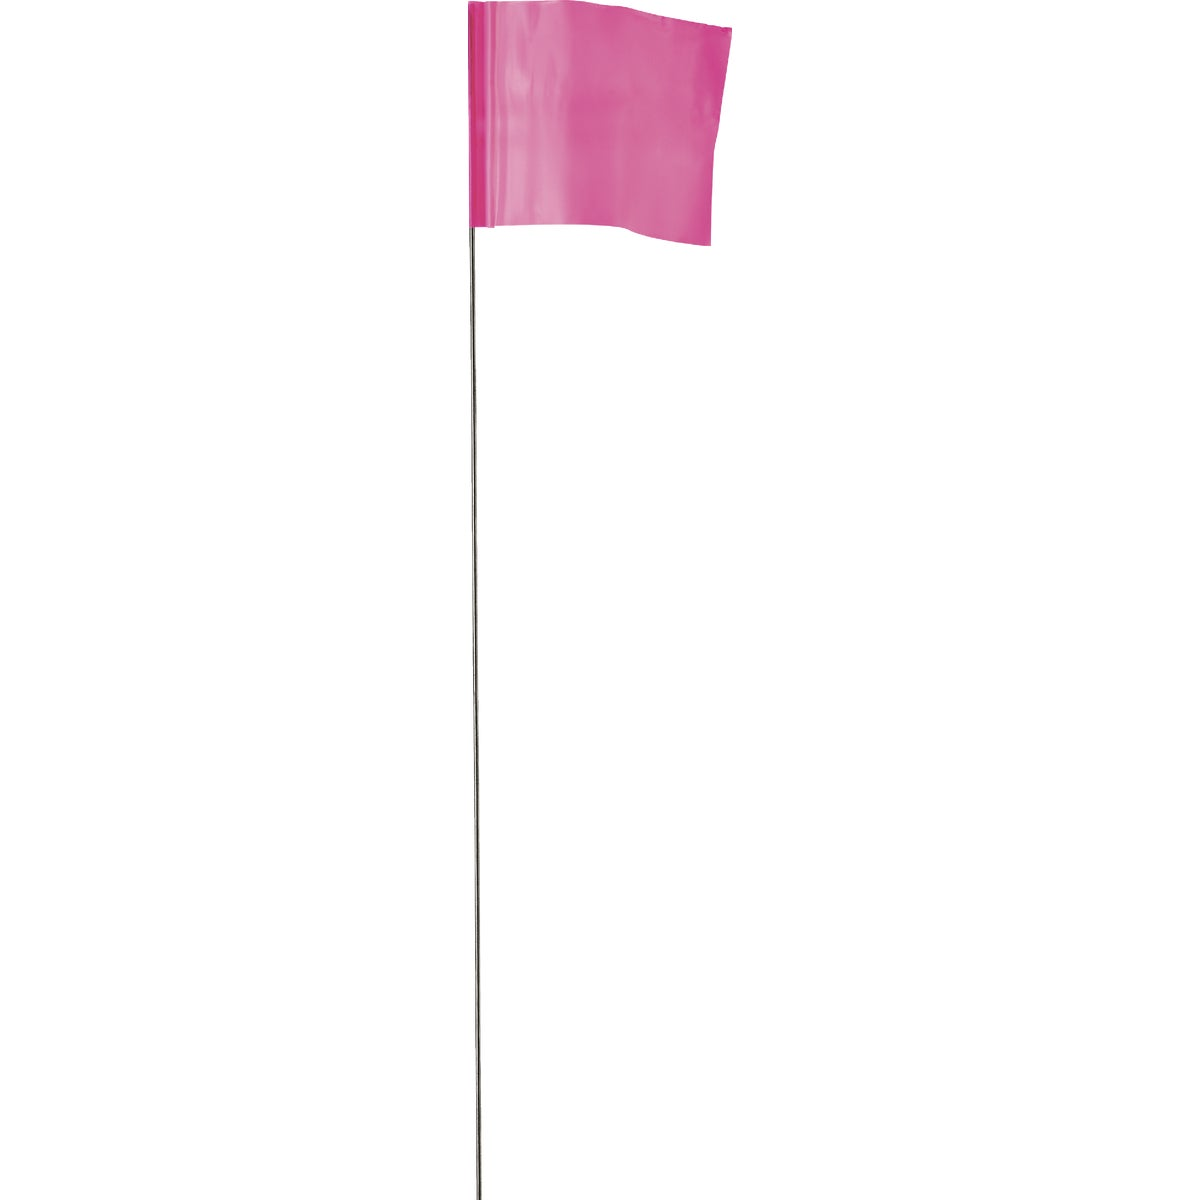 100PK PINK FLAGS - 64101 by Irwin Industr Tool